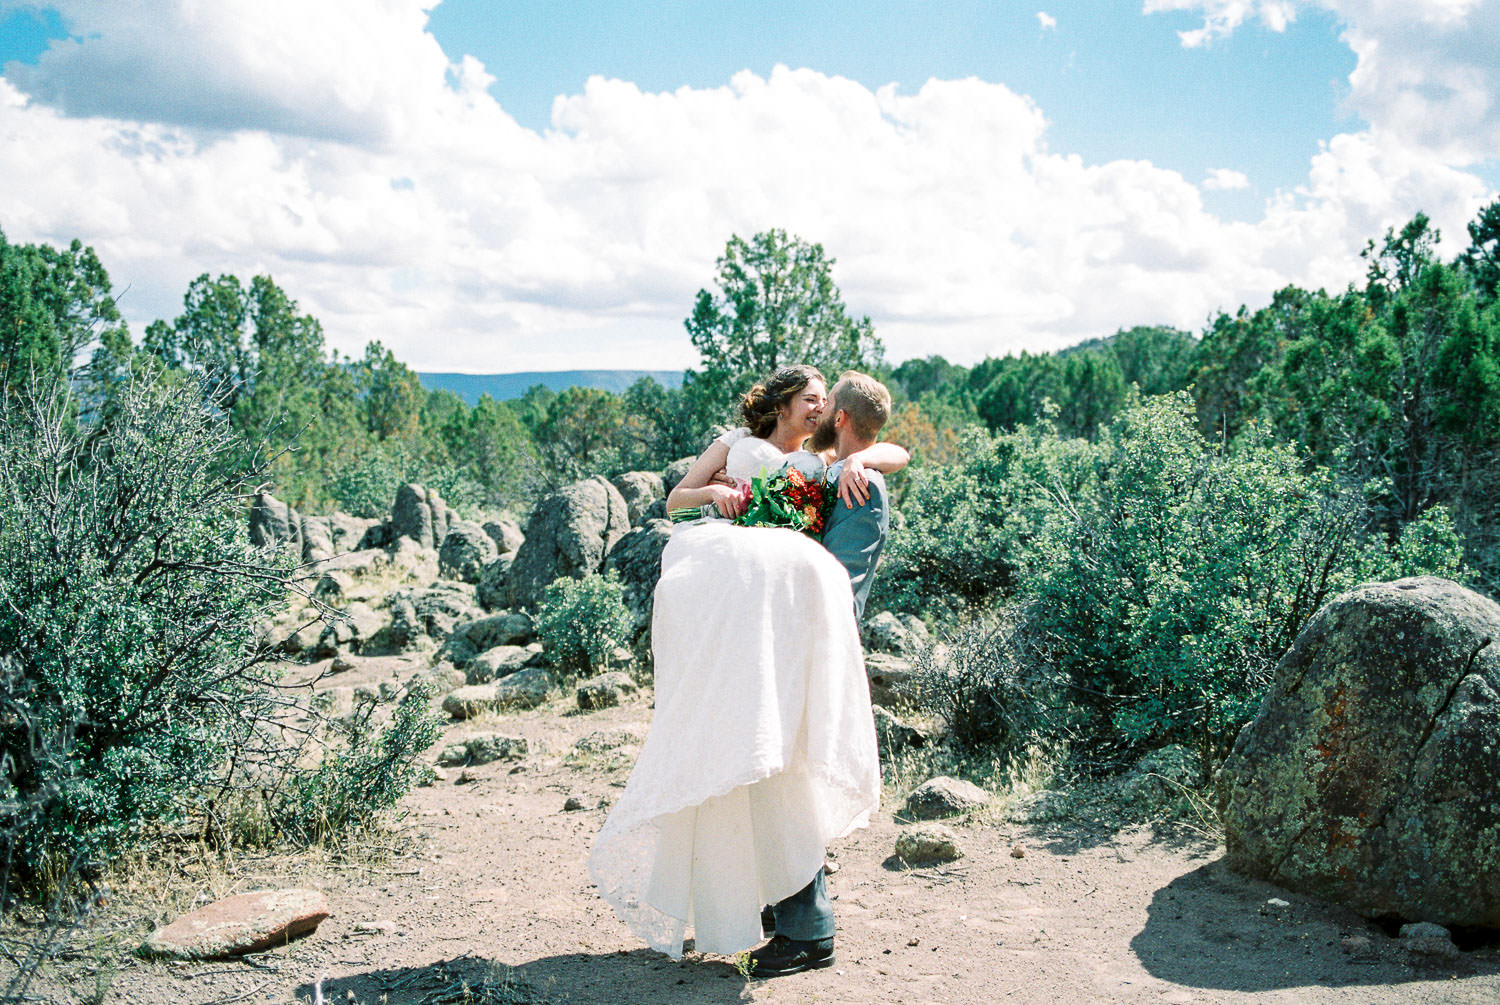 Colorado film wedding photographer Fuji 400H